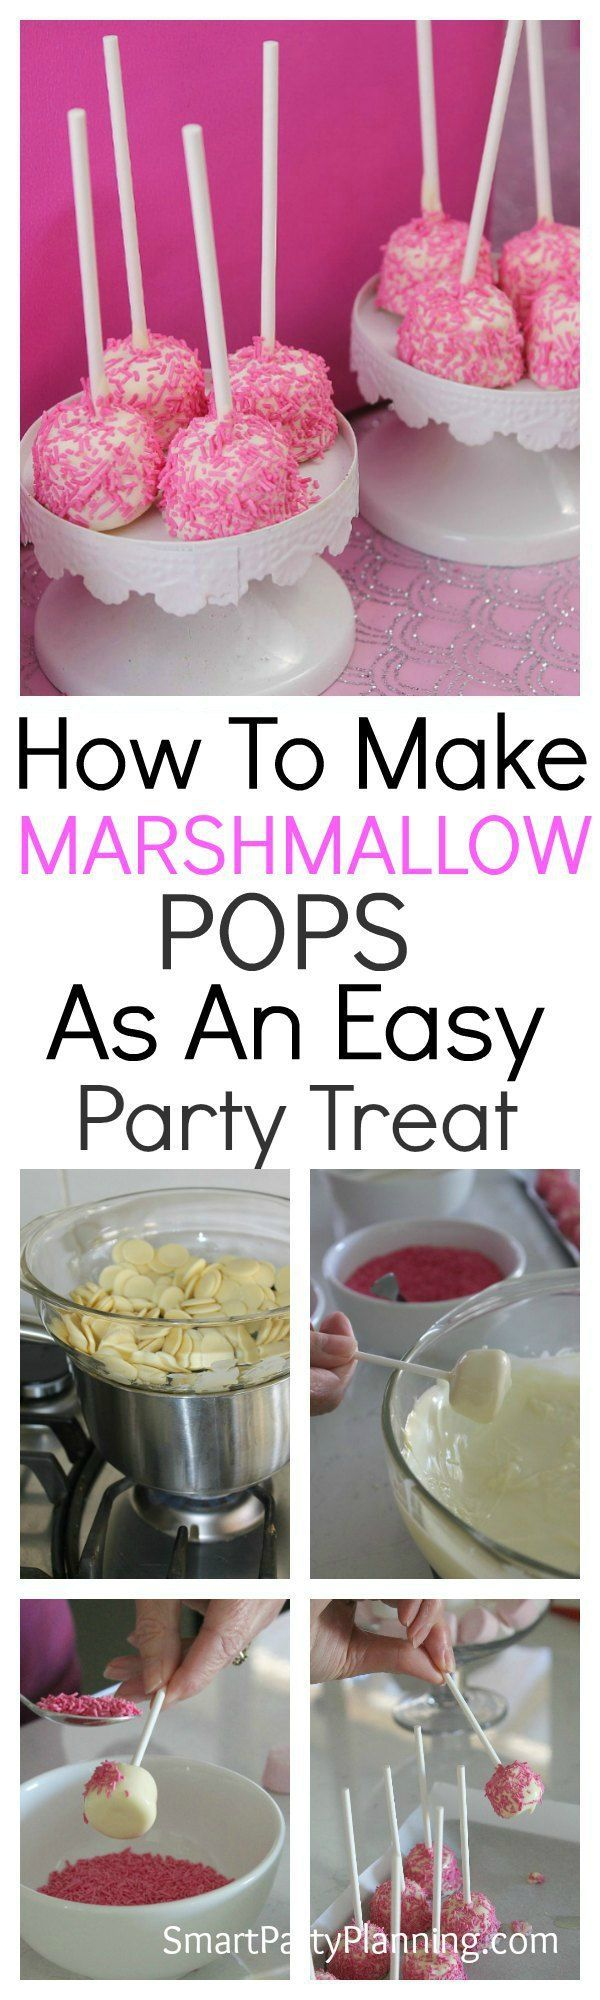 How to make marshmallow pops the easy way using a simple step by step tutorial. Marshmallow pops are perfect for birthday and other celebrations and are a treat that the kids will love. This will be a DIY candy dessert that you will come back to time and